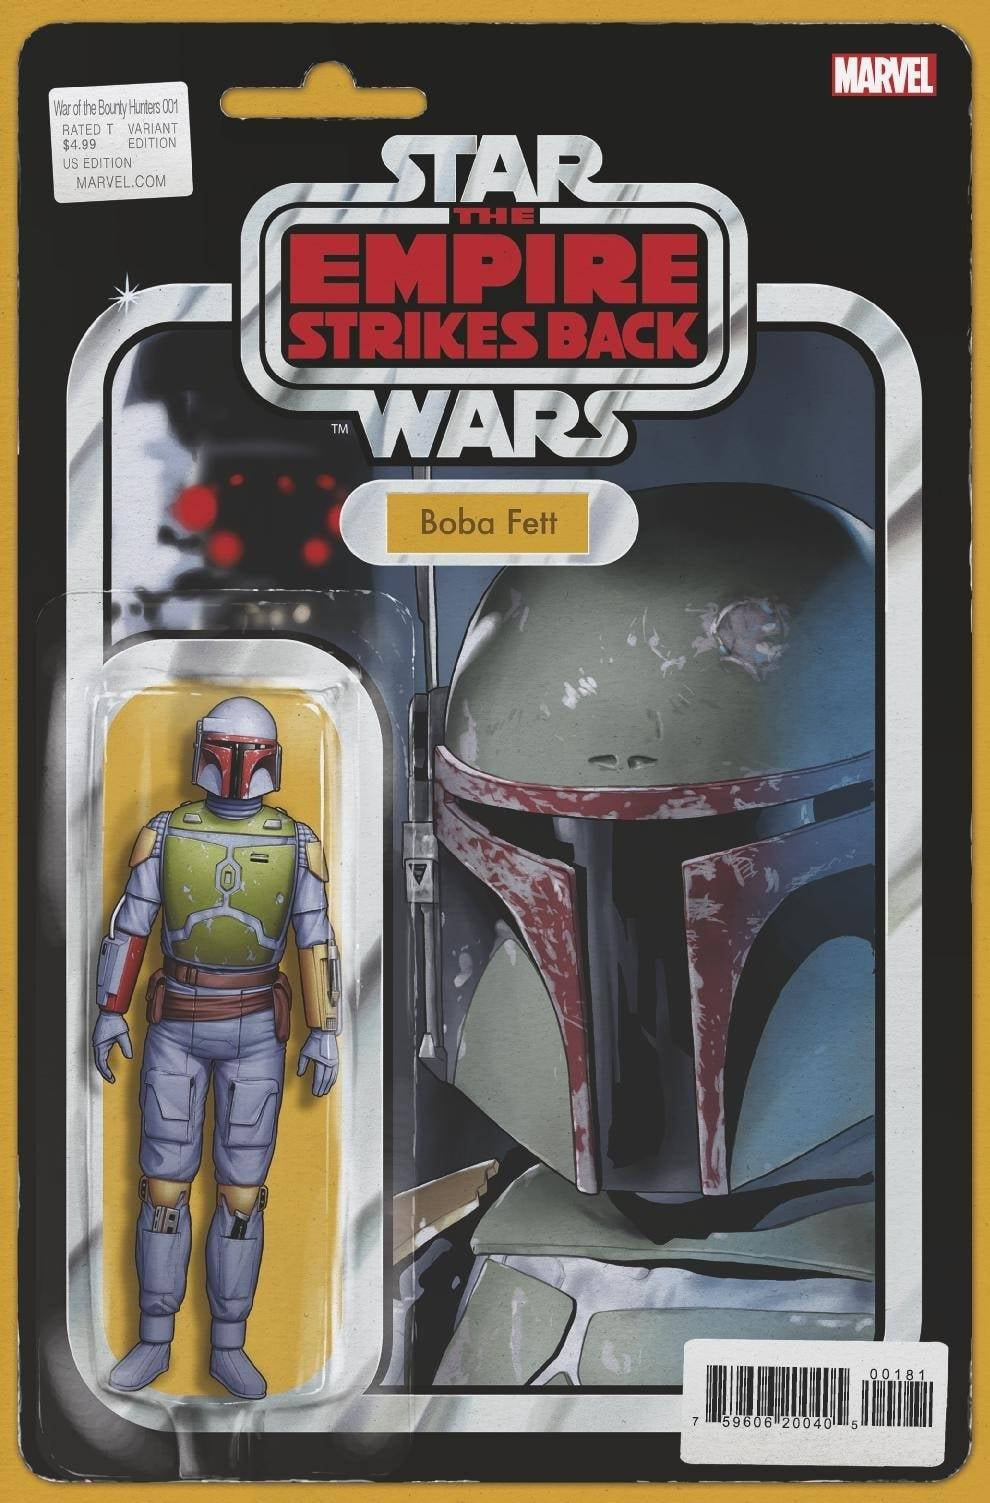 Star Wars: War of the Bounty Hunters 1 - Action Figure Variant